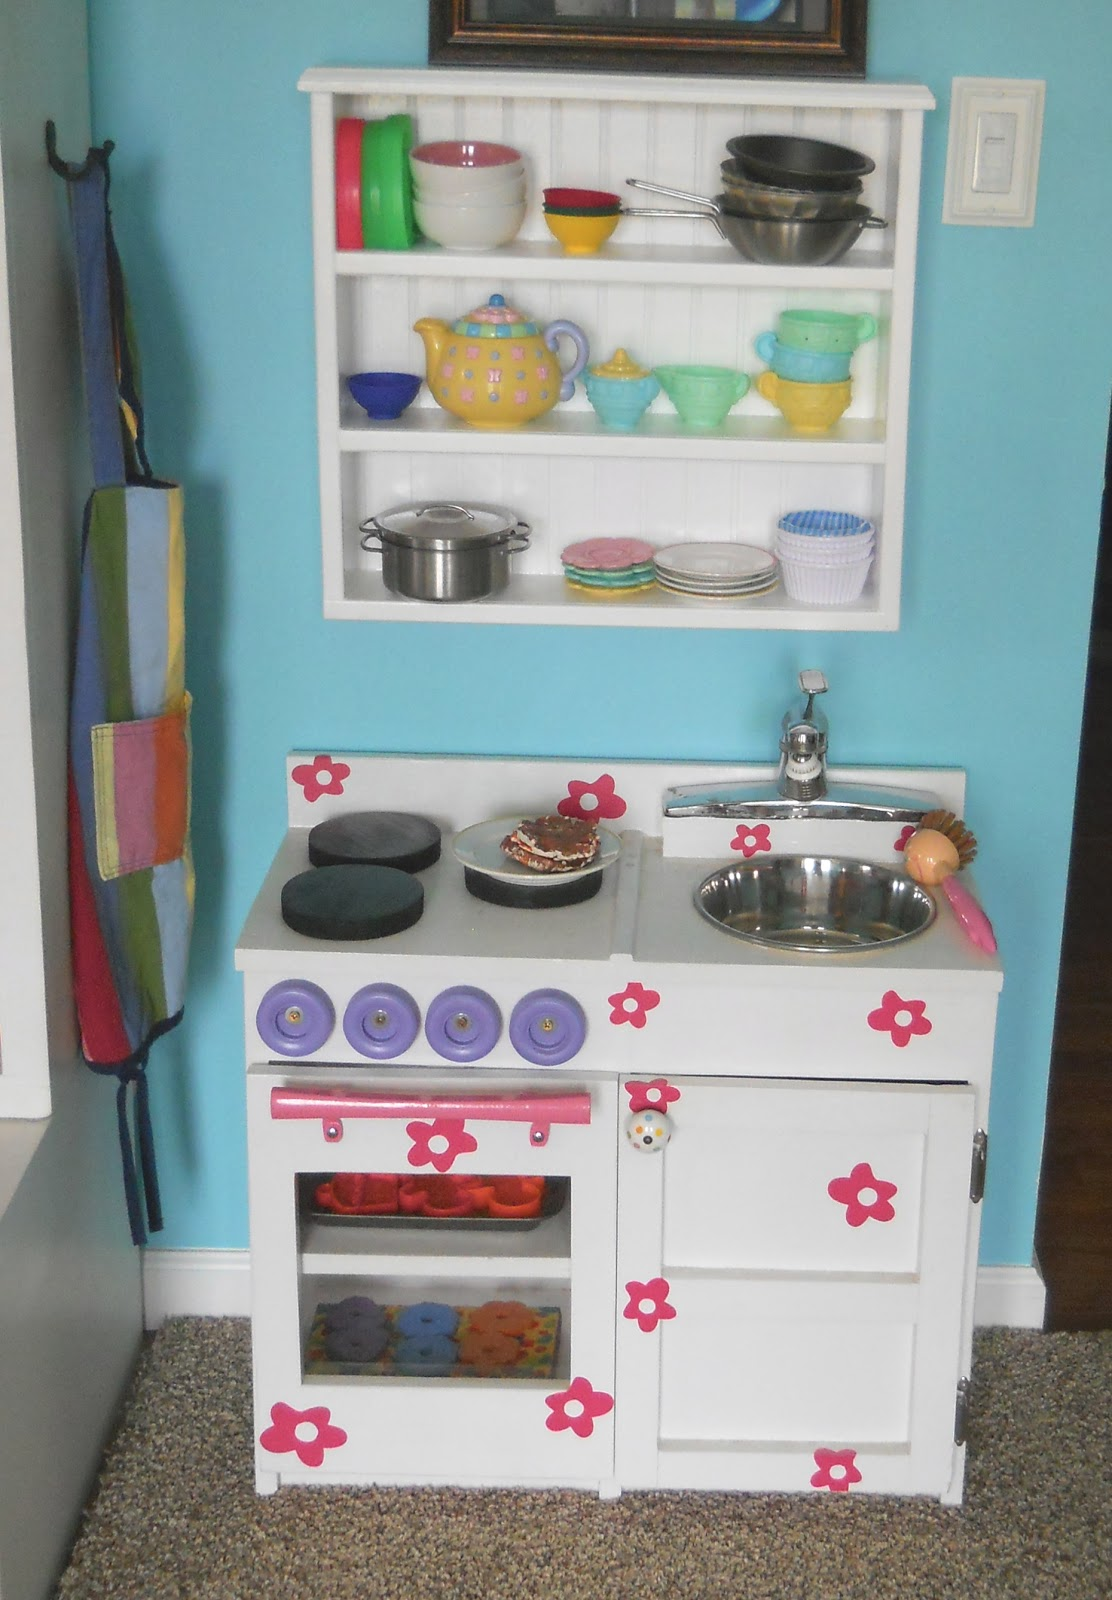 1001 Goals: Hanging shelf for play kitchen